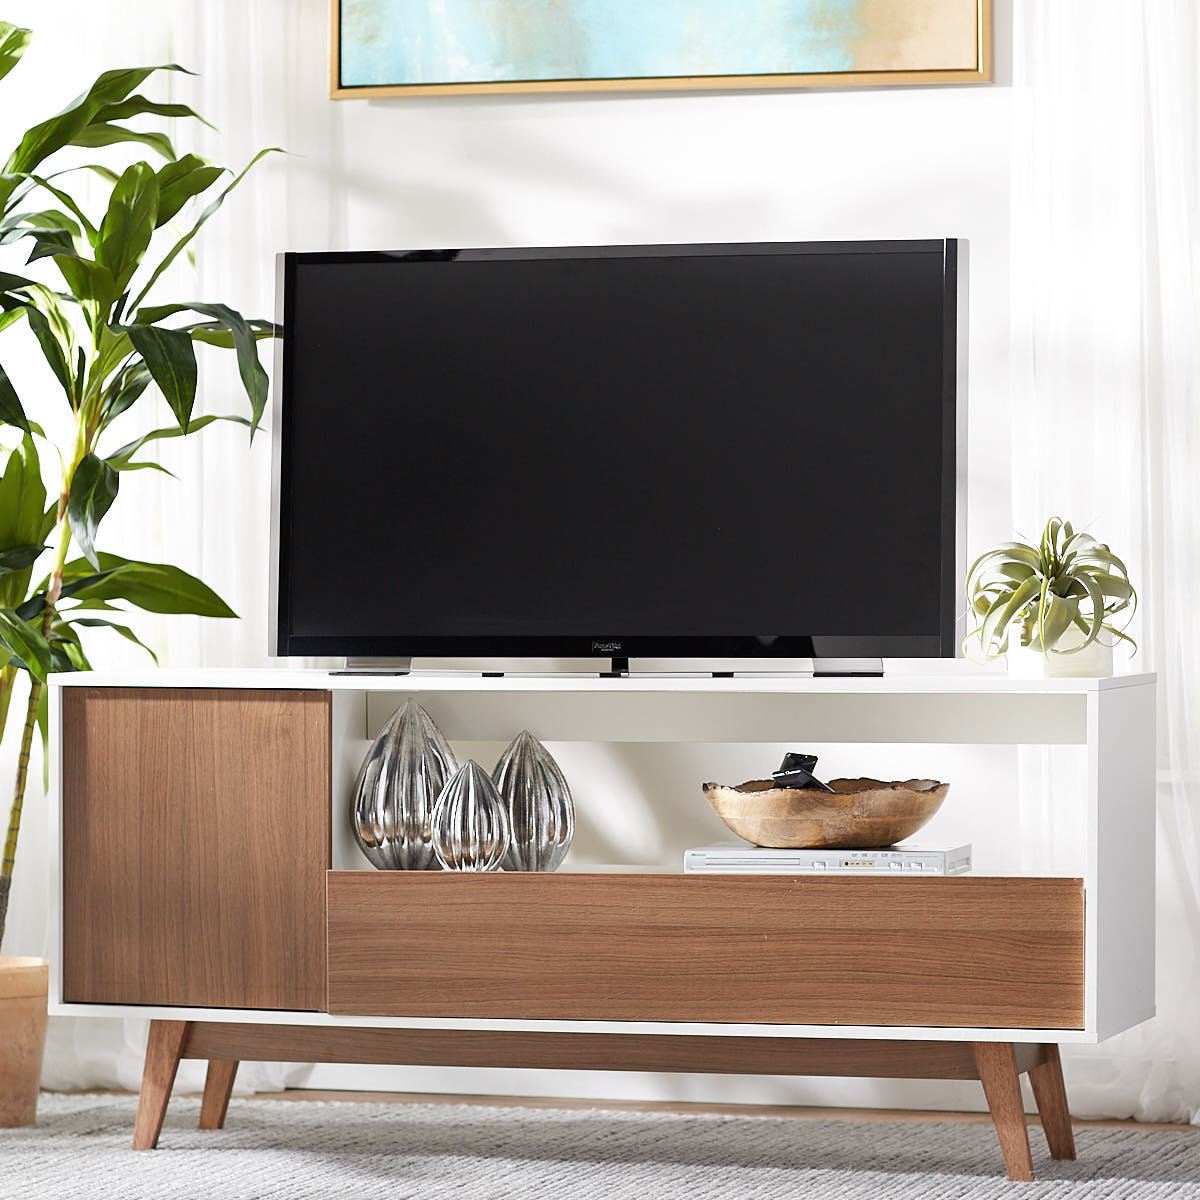 """Langley Street Quincy Tv Stand For Tvs Up To 65"""" & Reviews 